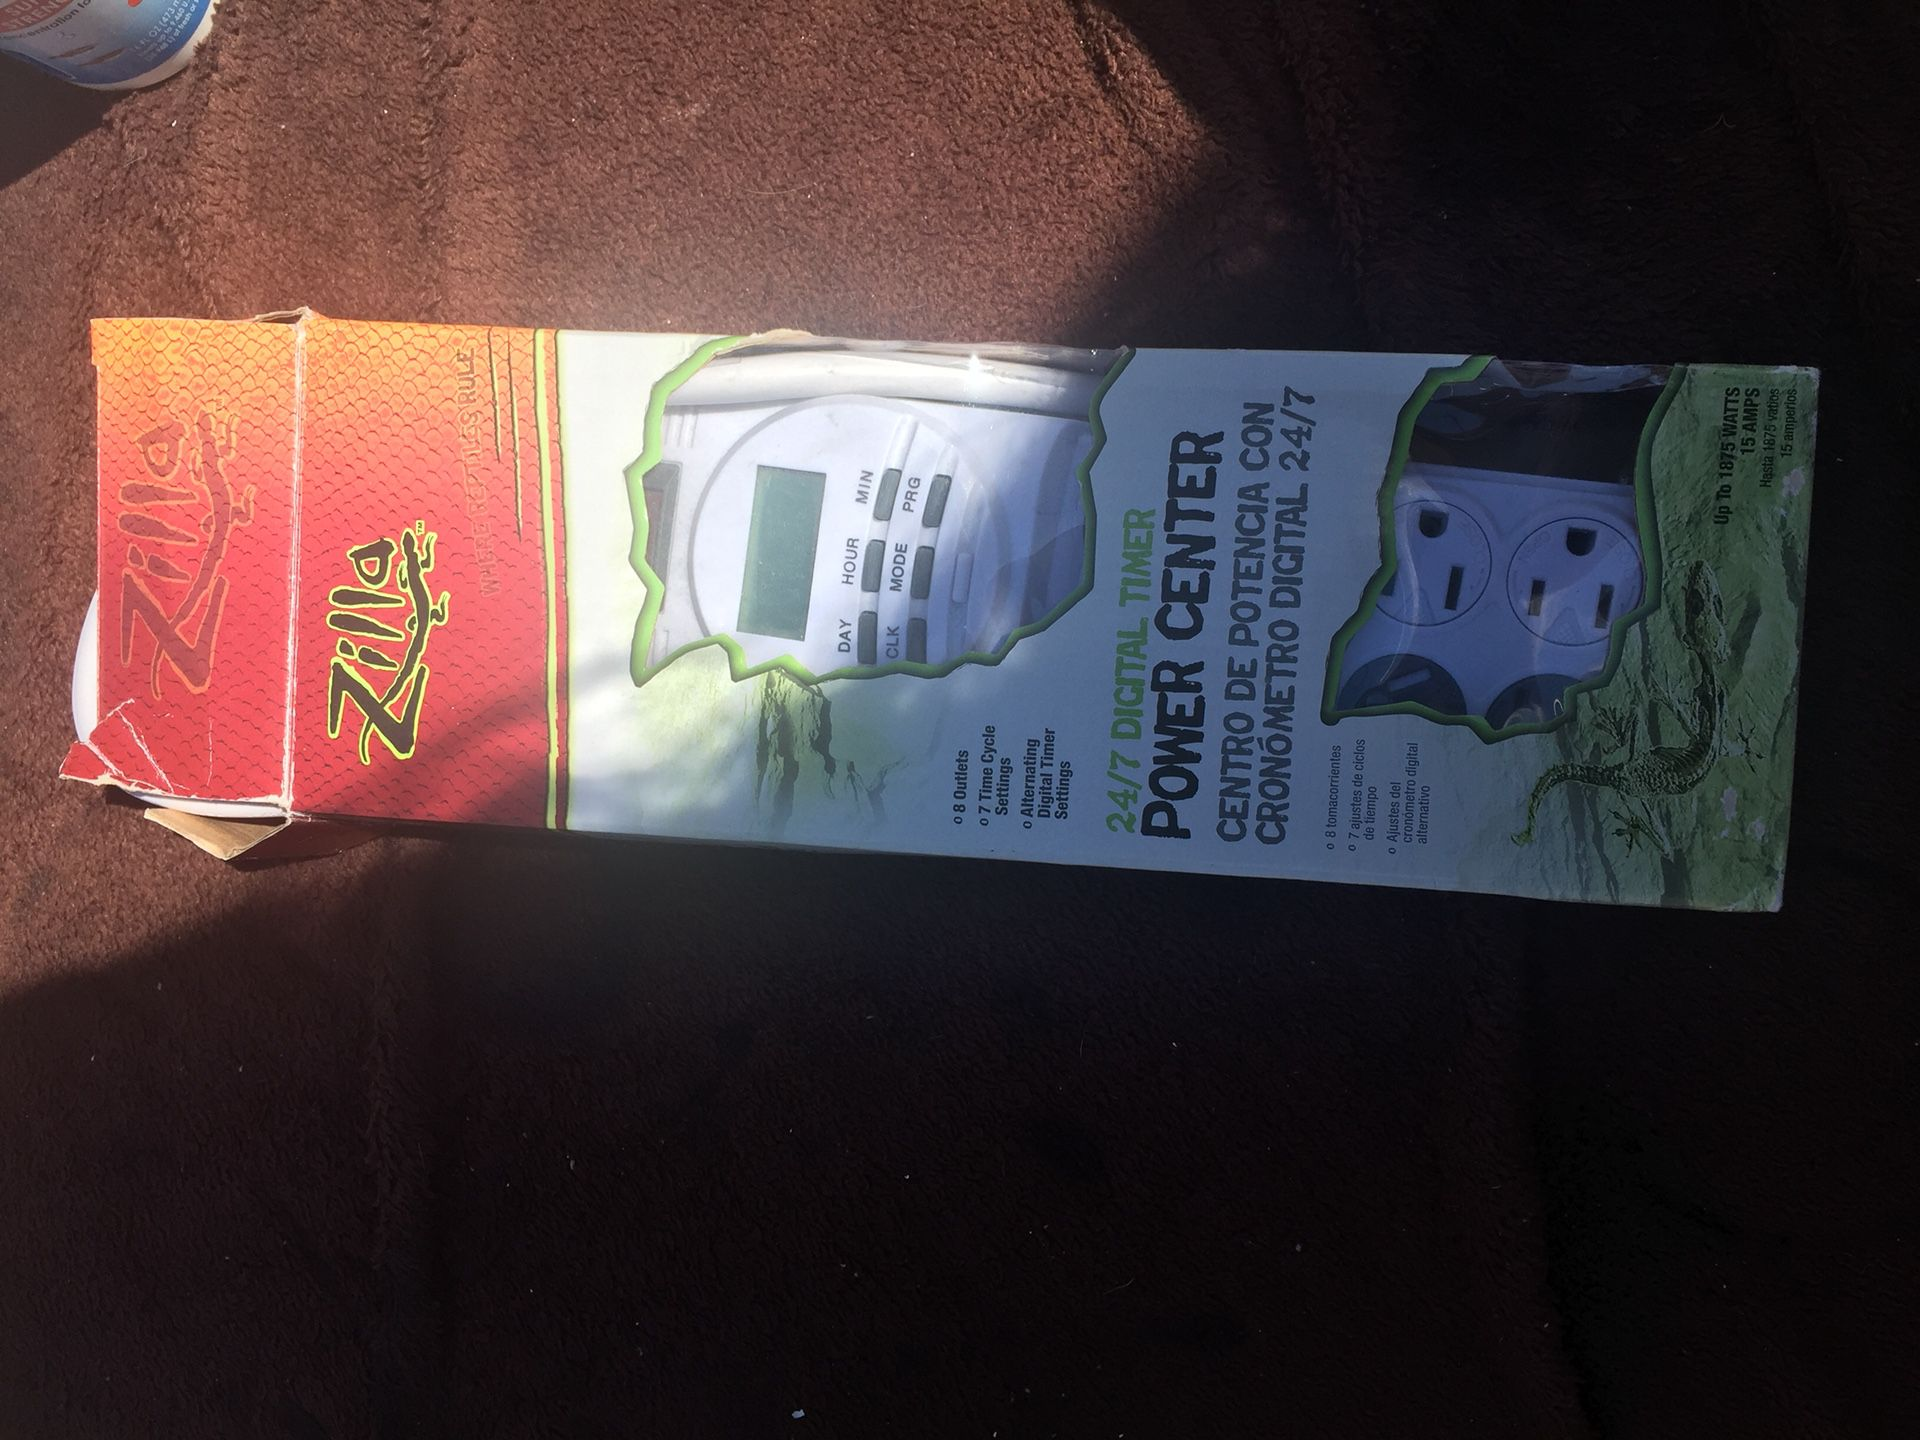 Reptile power strip with timer